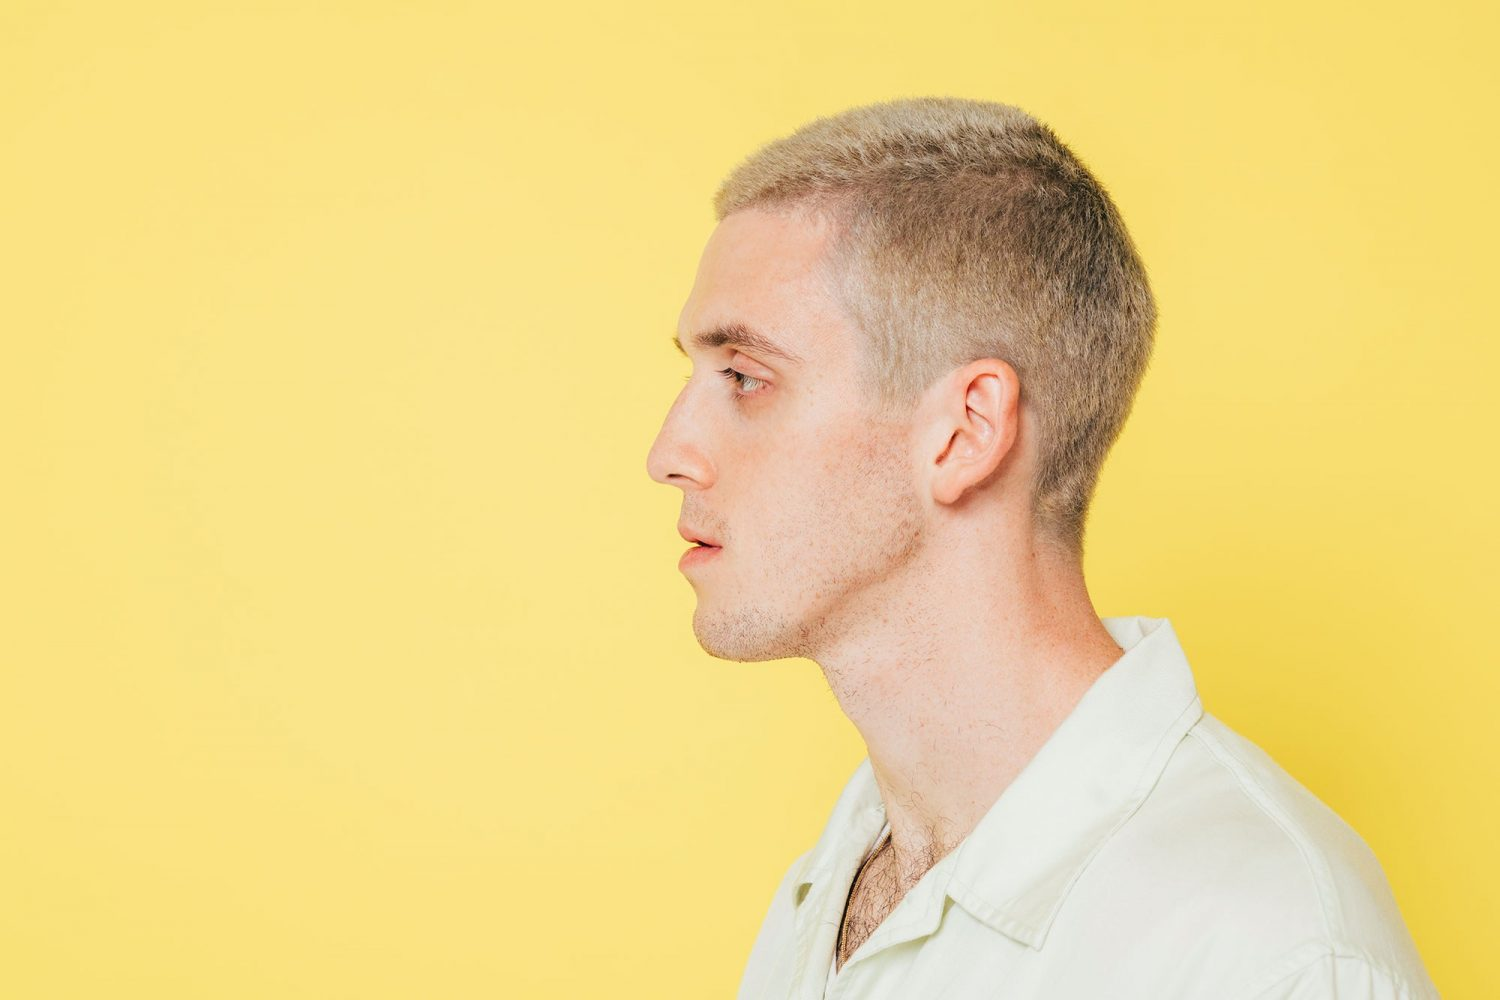 Once more, with feeling: Lauv's time is now